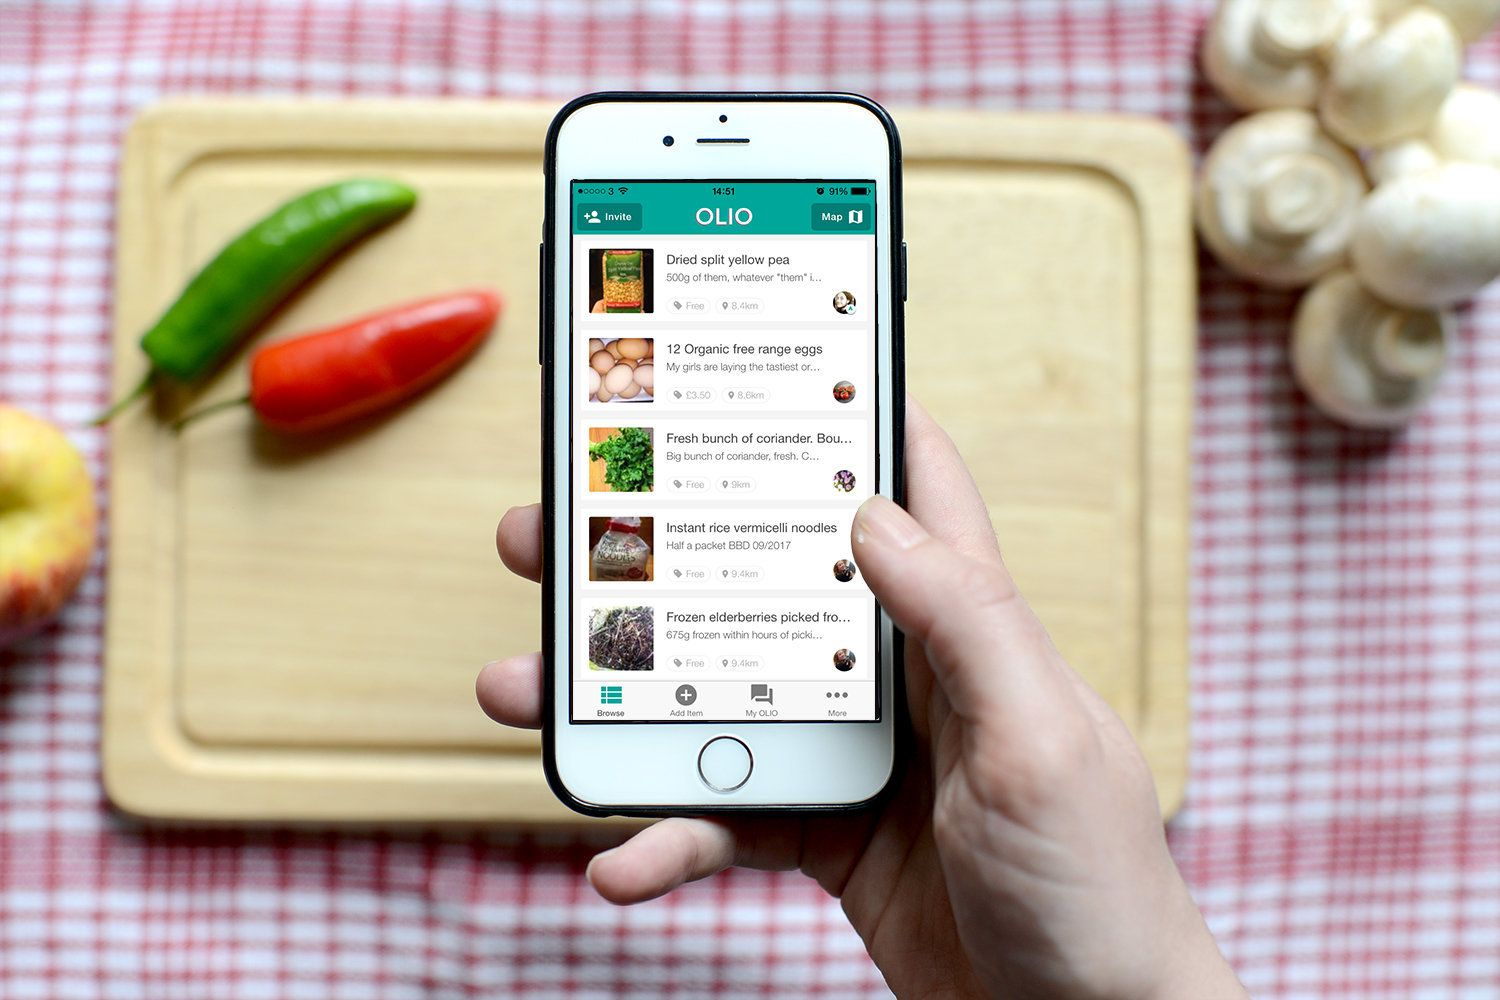 Food Waste App OLIO Has Become A Lifeline For Those Who Can't Afford To Feed